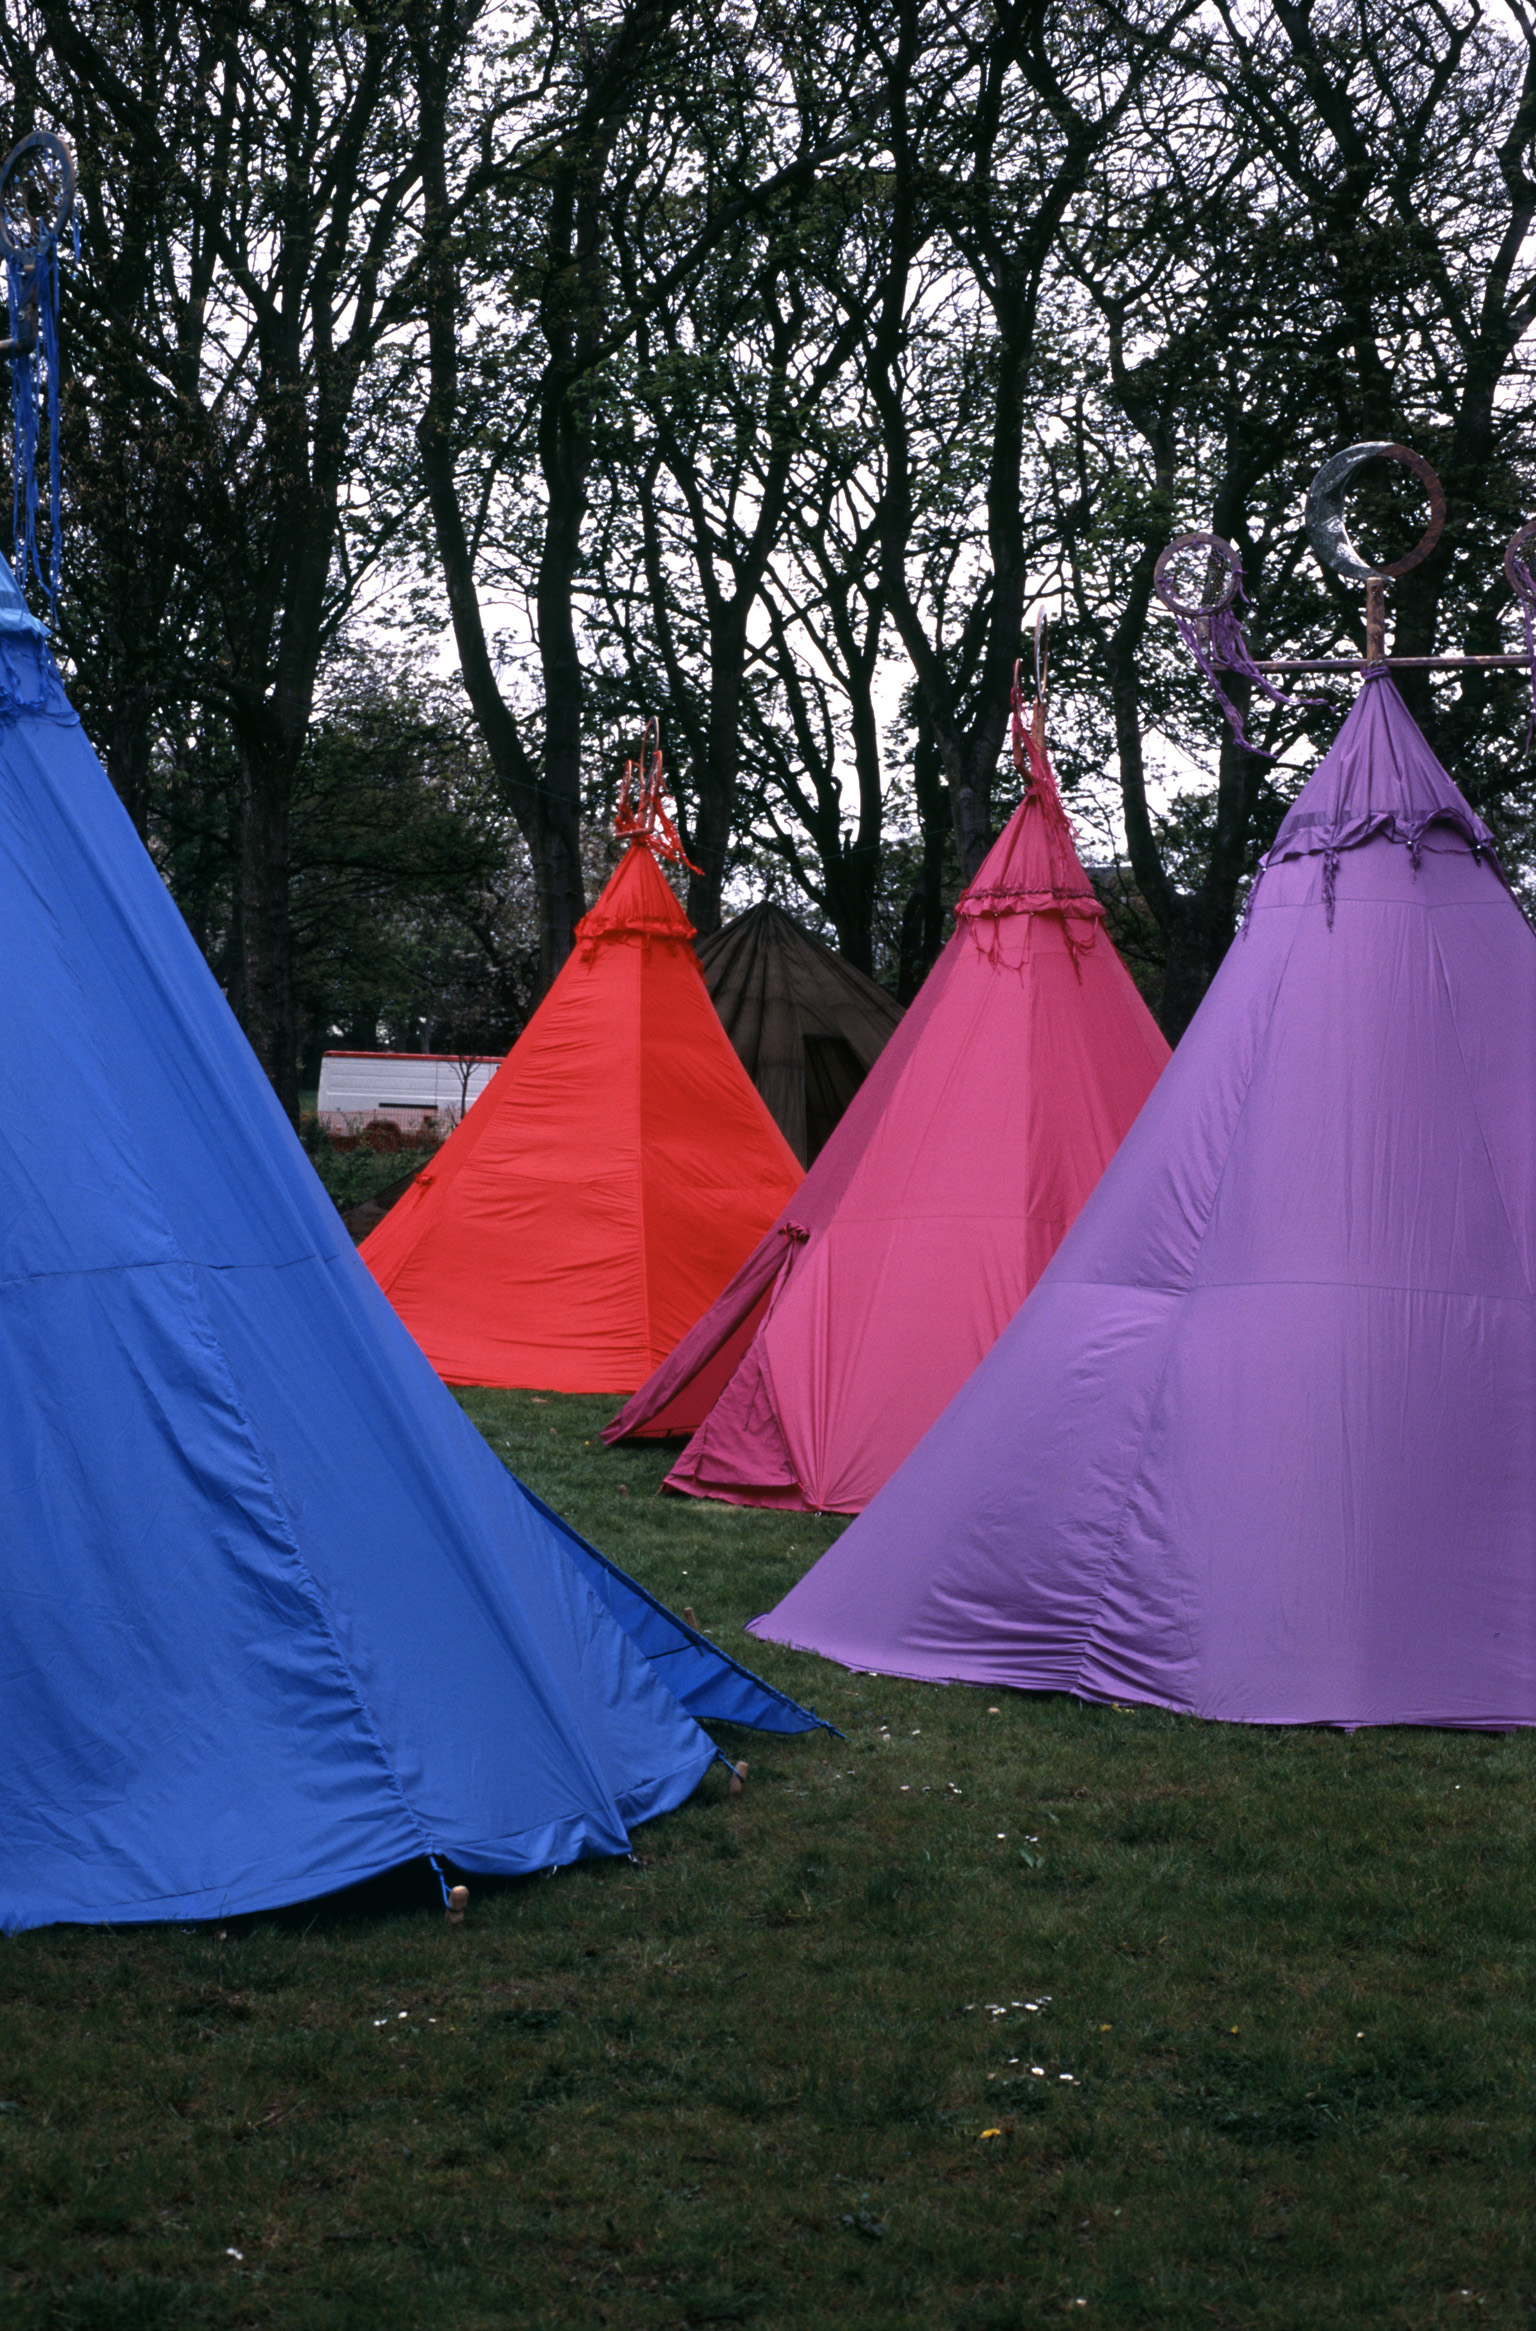 Four Colorful Tents of Blue, Red, Pink, and Purple Set Up in Grassy Clearing